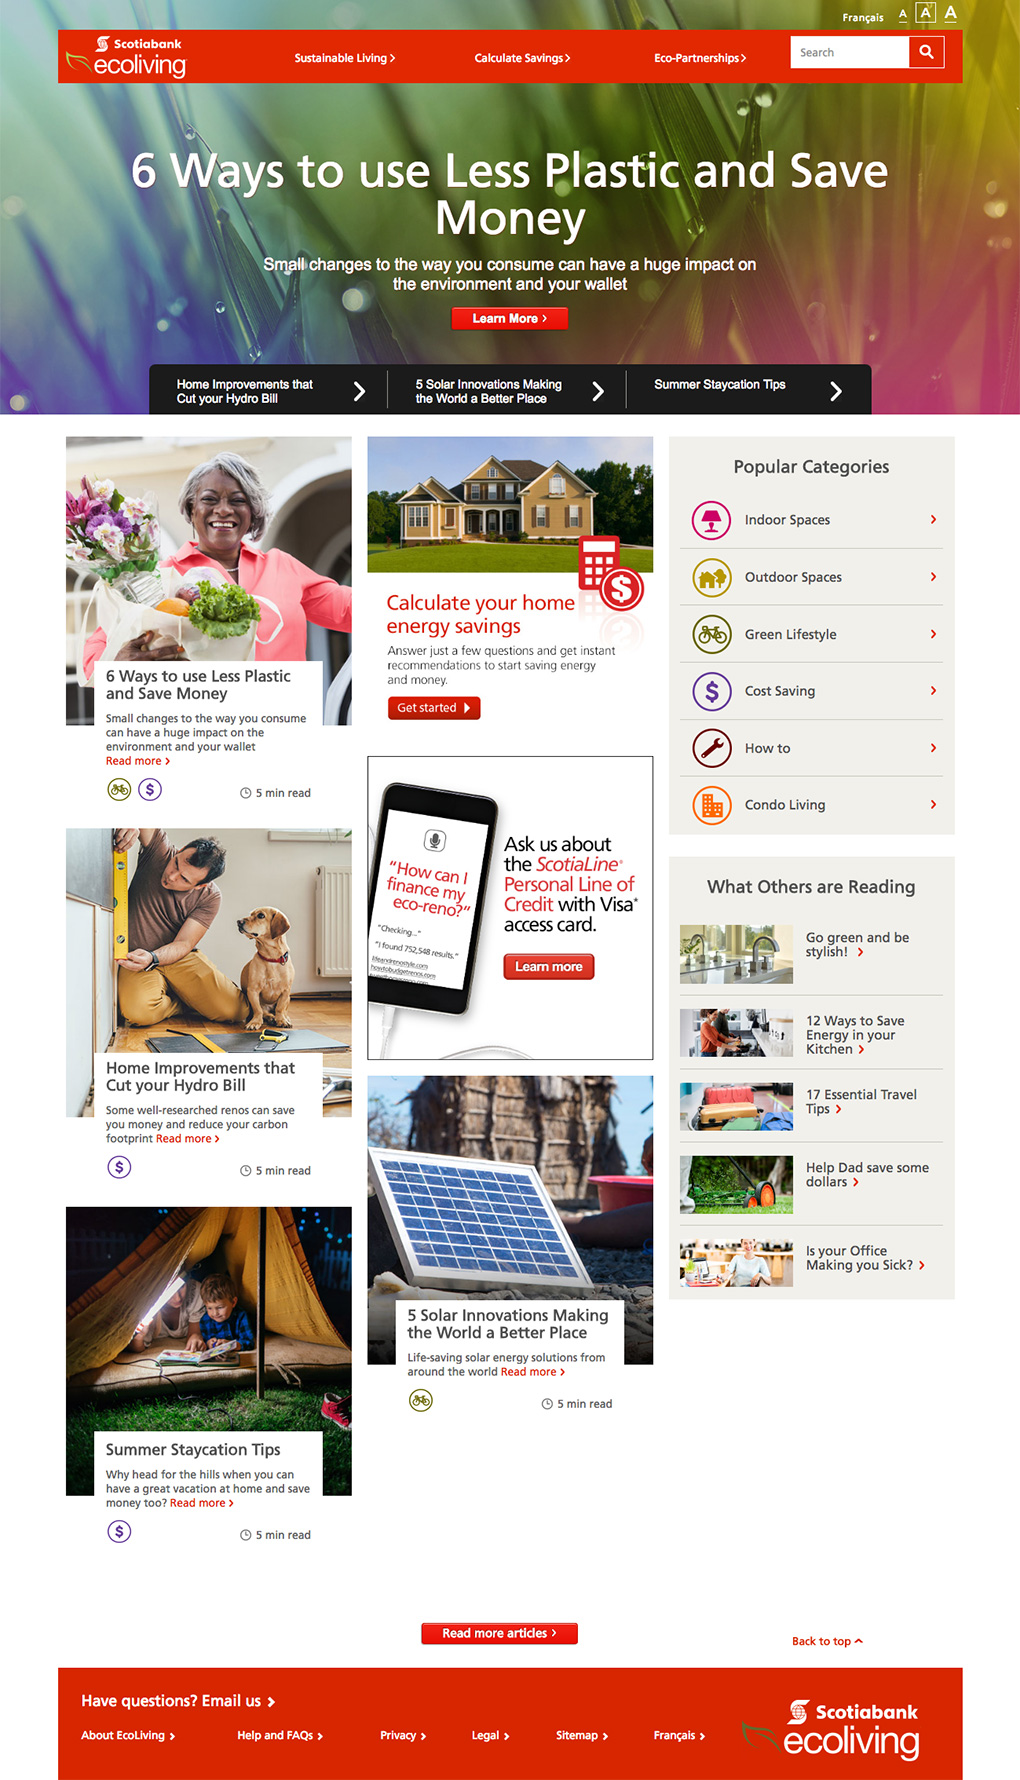 Scotiabank EcoLiving Website Homepage